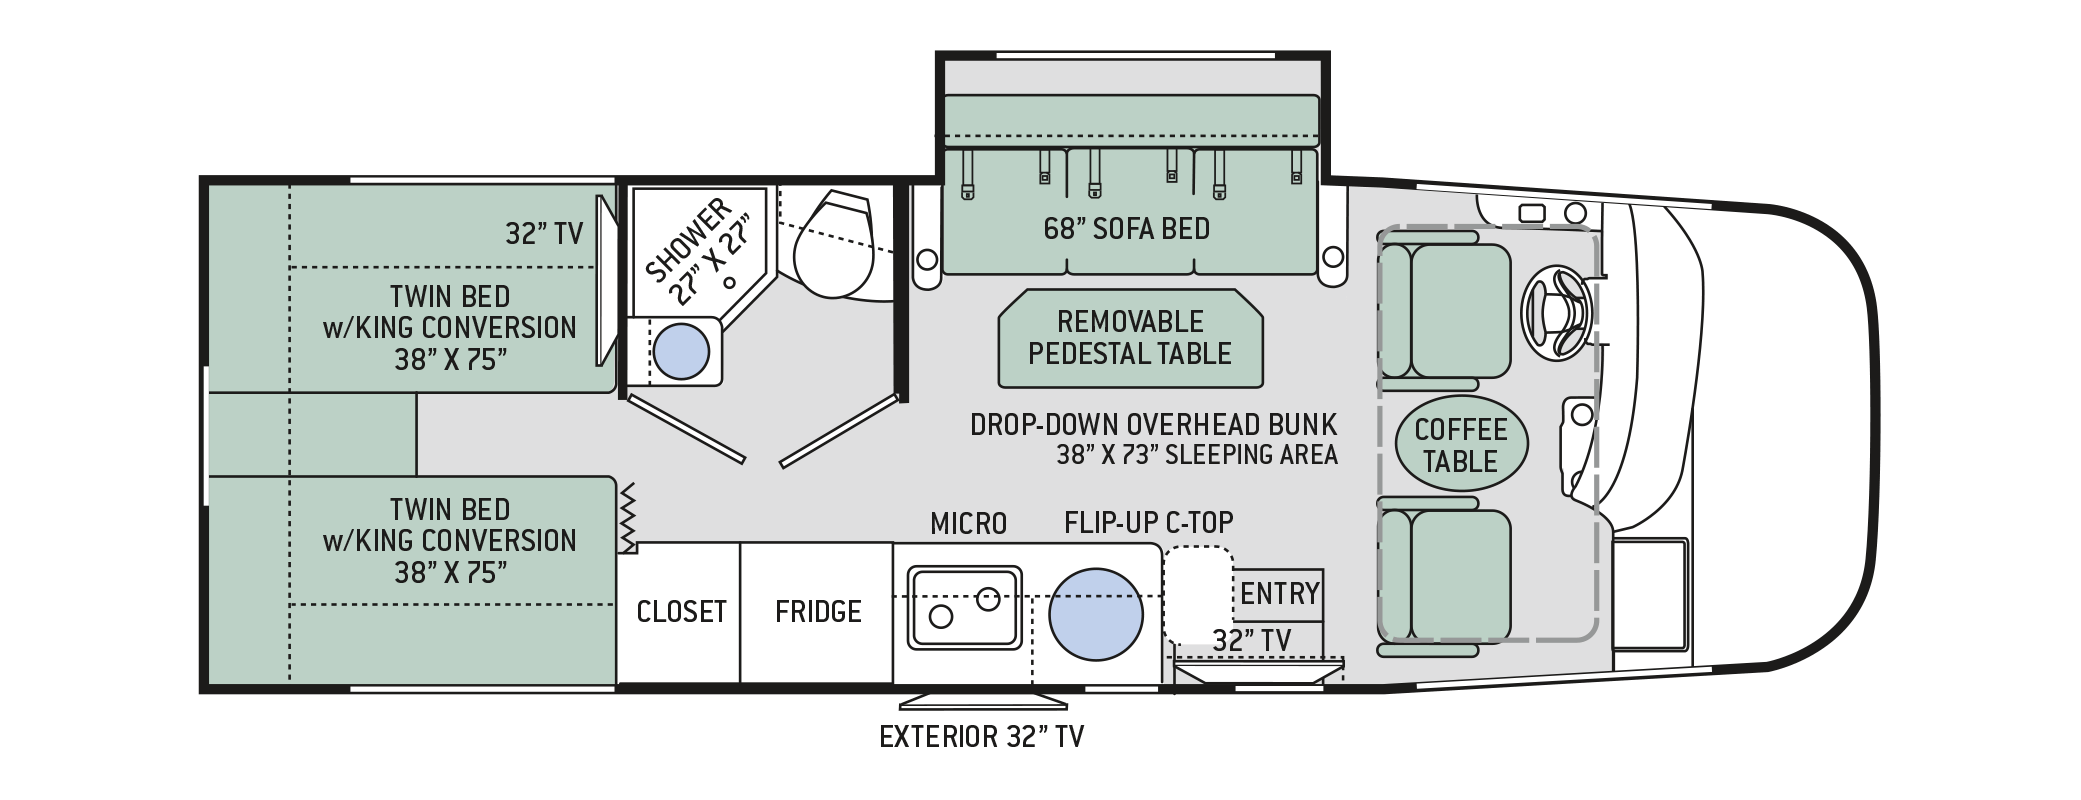 Floor Plans Vegas 24 1